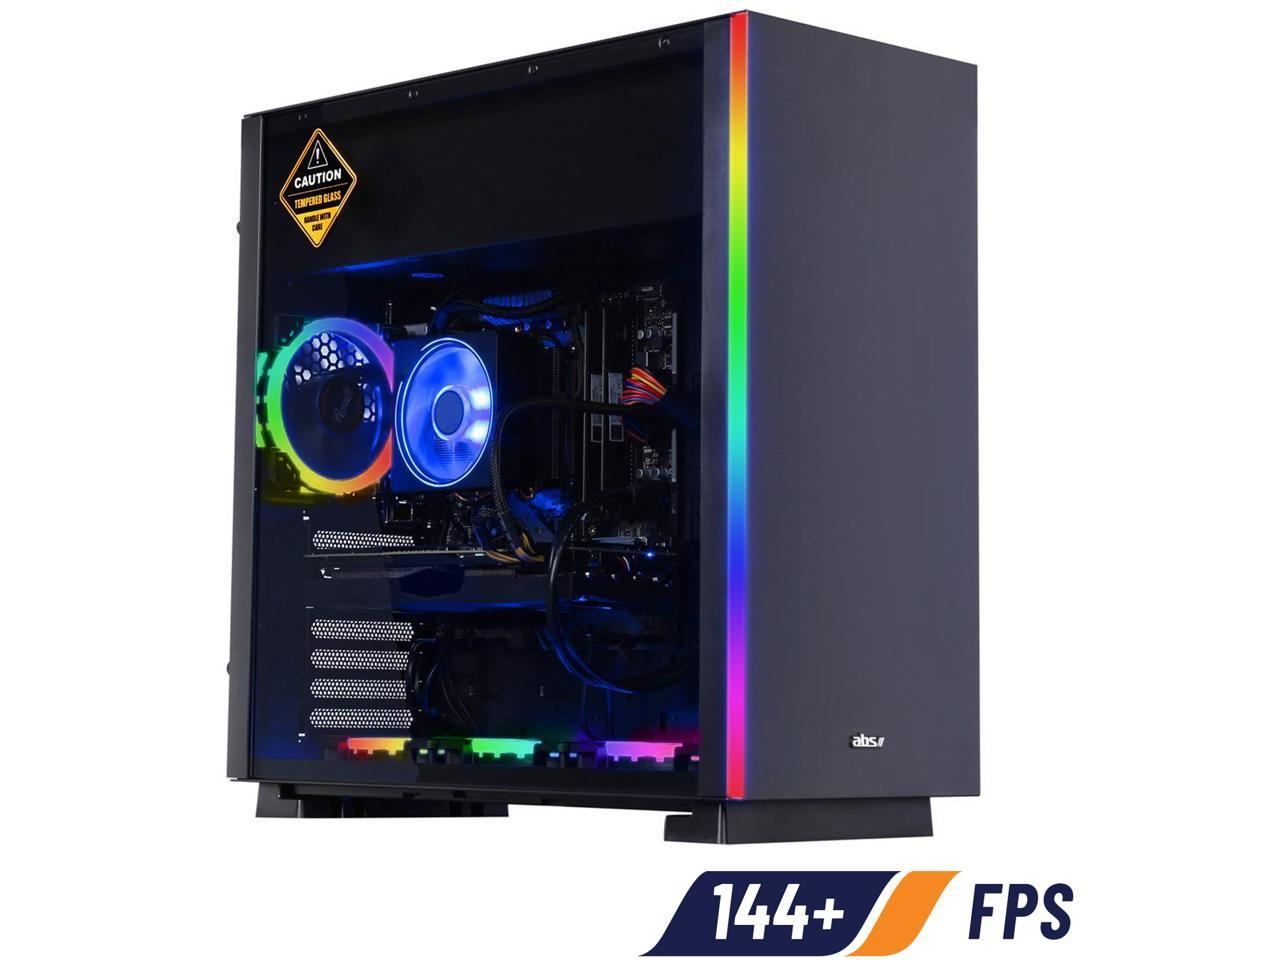 ABS Prism B Ryzen 7 3700X GeForce RTX 2070 SUPER 16GB DDR4 RAM 1TB SSD Gaming Desktop